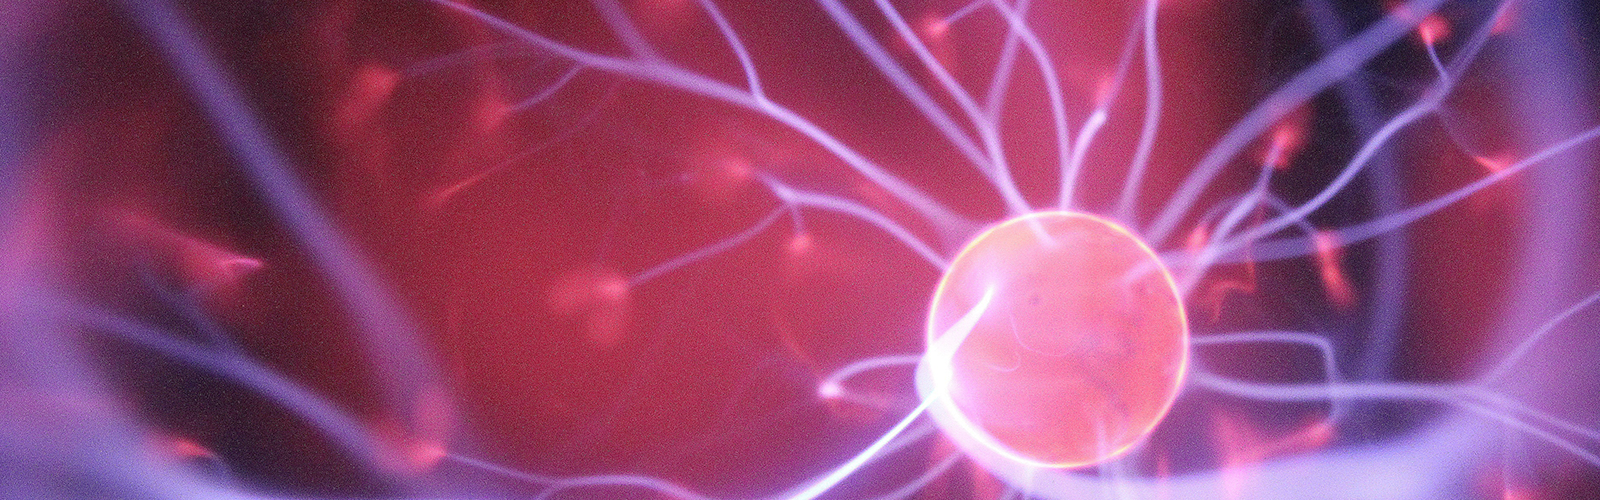 Pink and Purple Plasma Ball